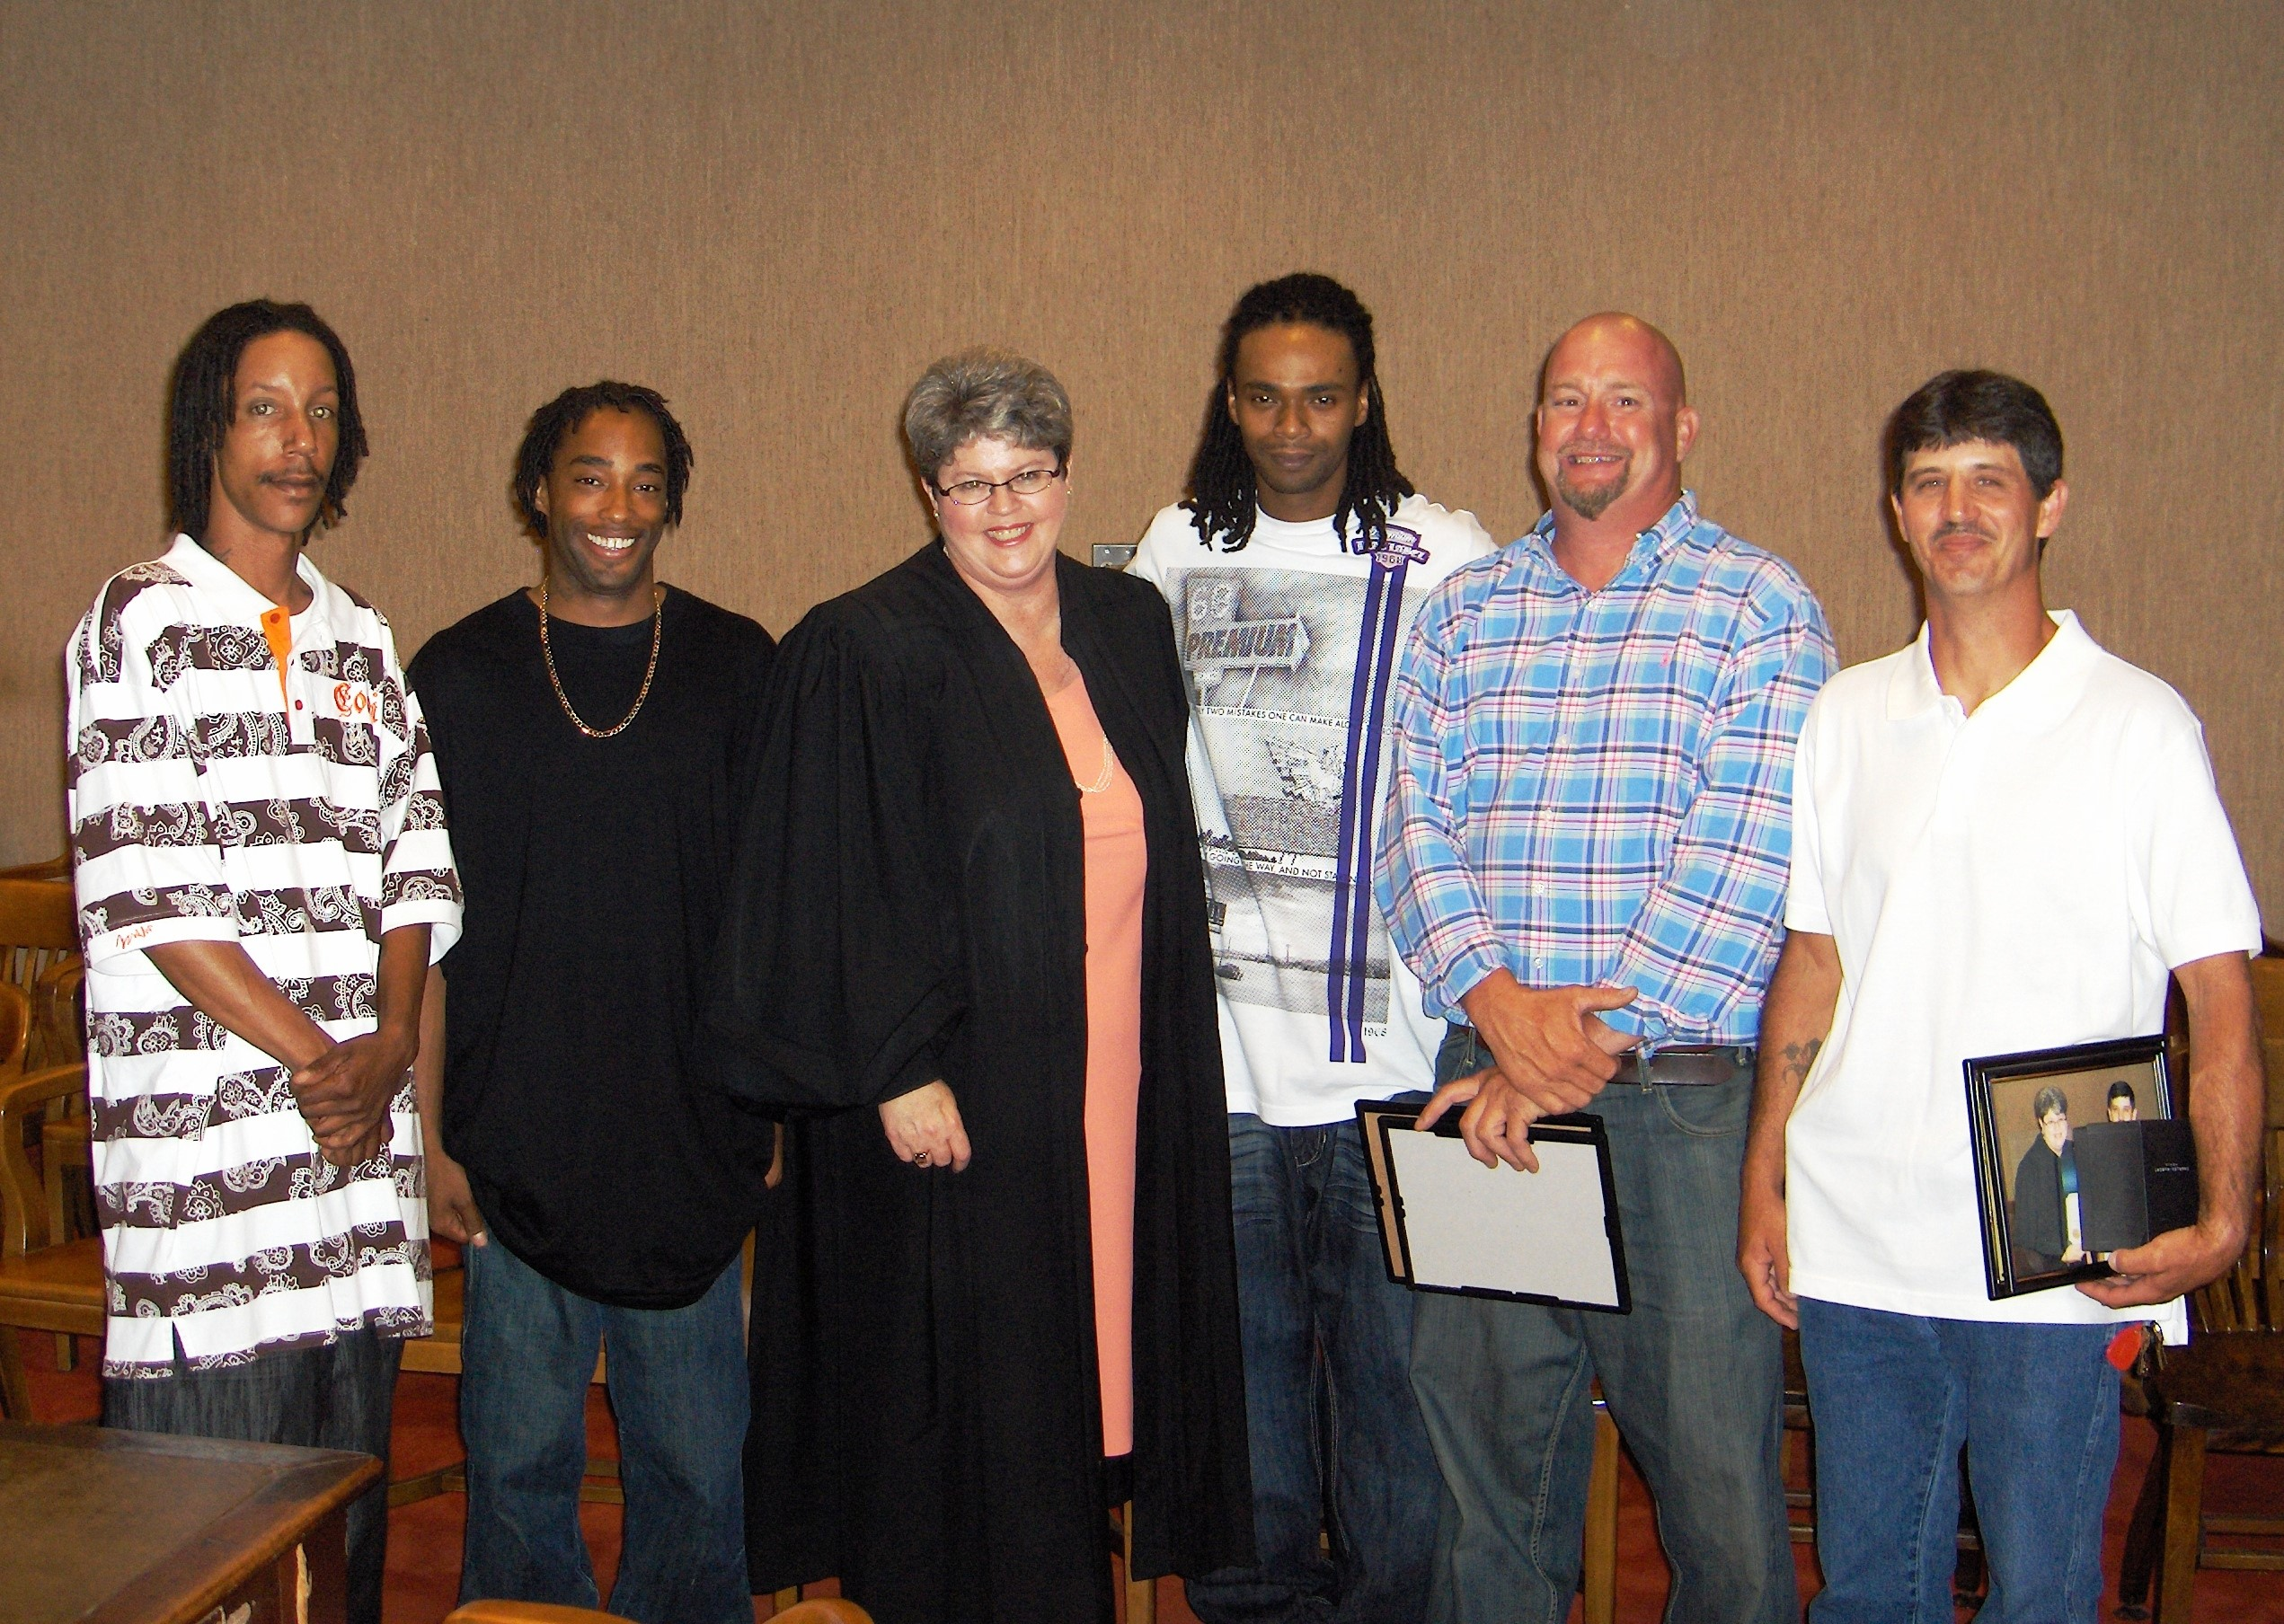 Drug Court Graduation Photo.JPG